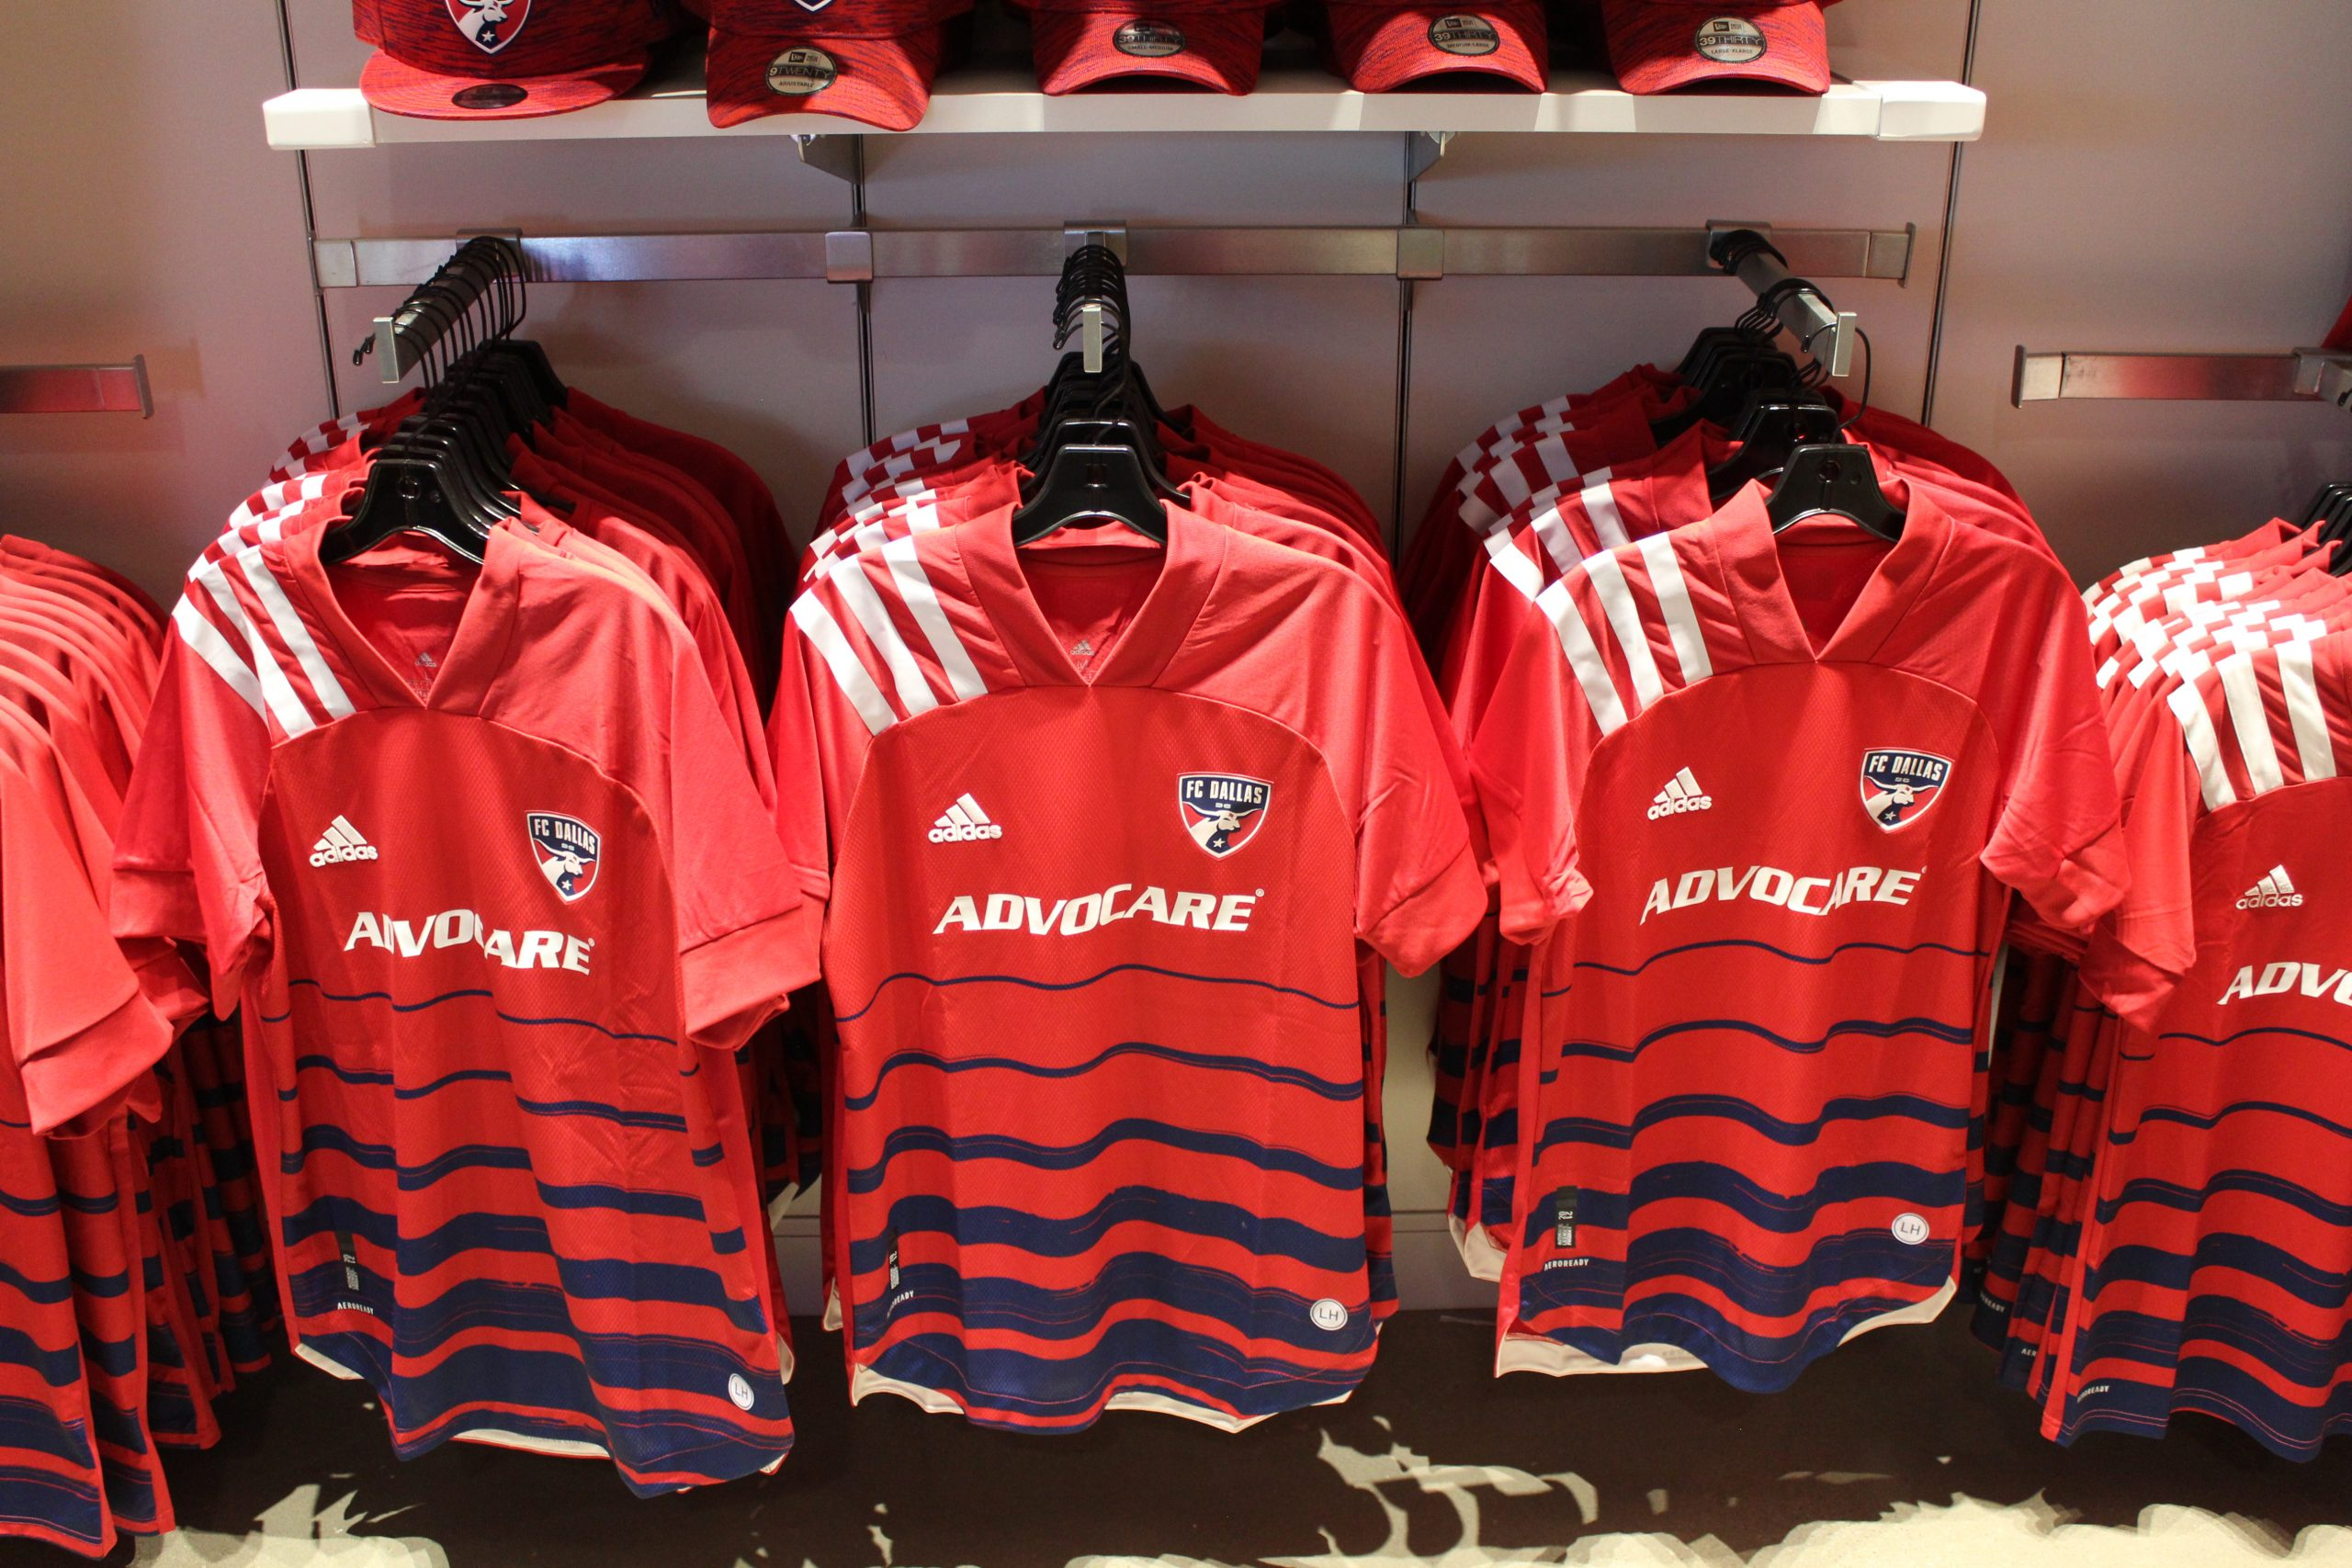 The 2020 'Legacy Kit' goes on sale at Soccer90 in Frisco (Dan Crooke)